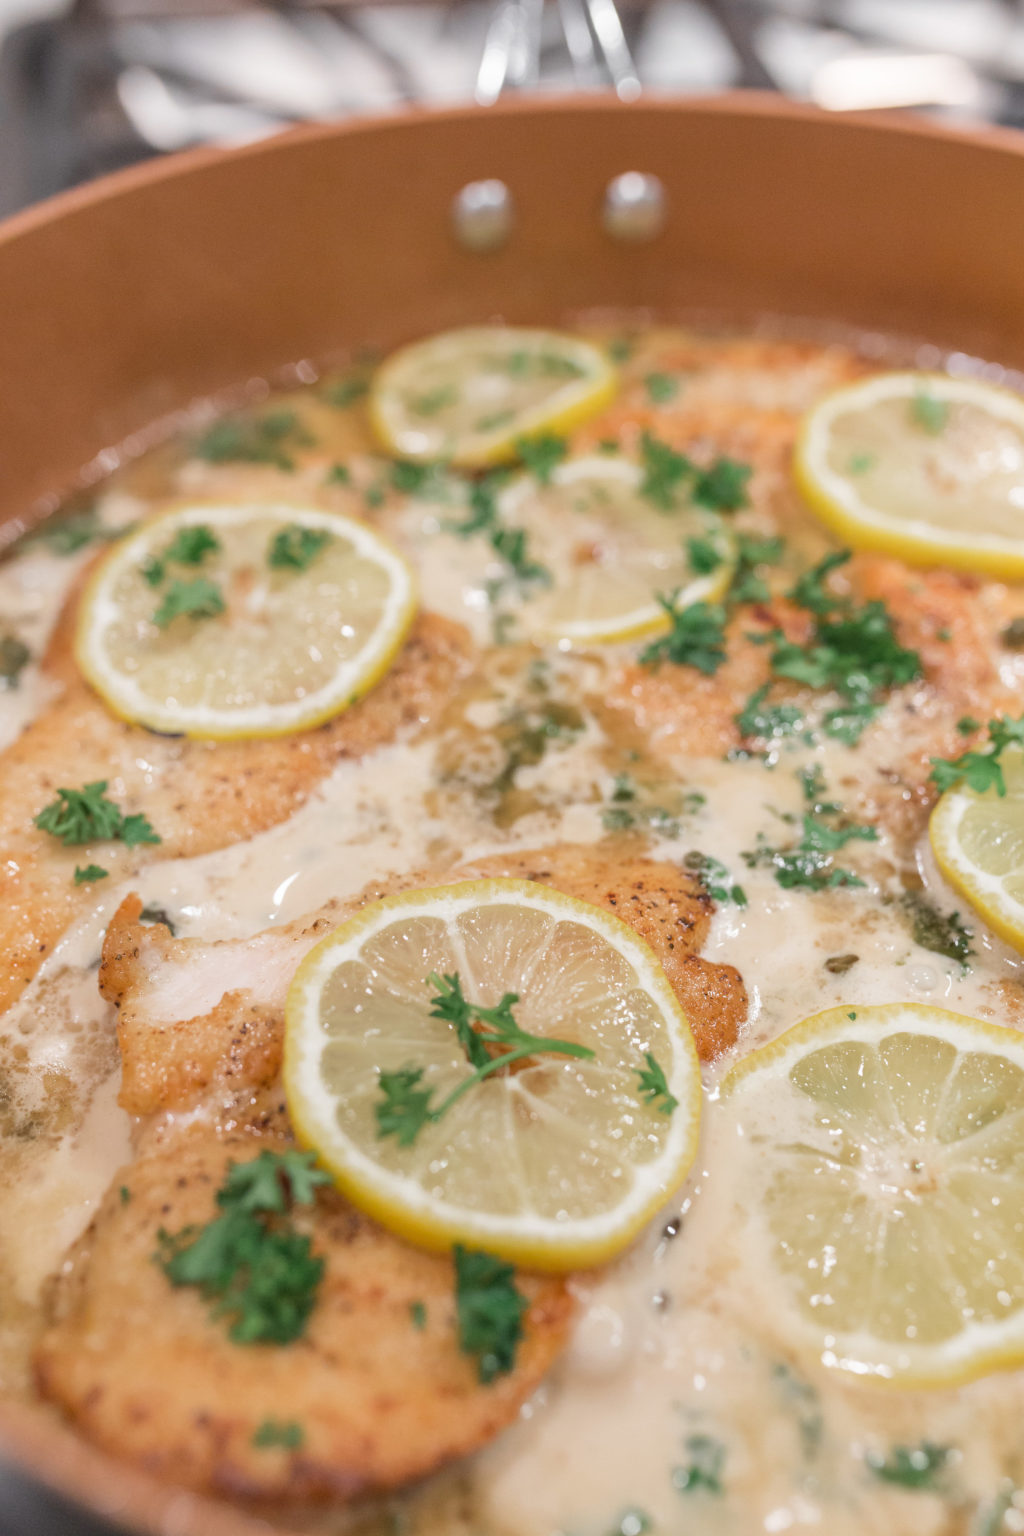 simple creamy lemon chicken piccata cooking in skillet